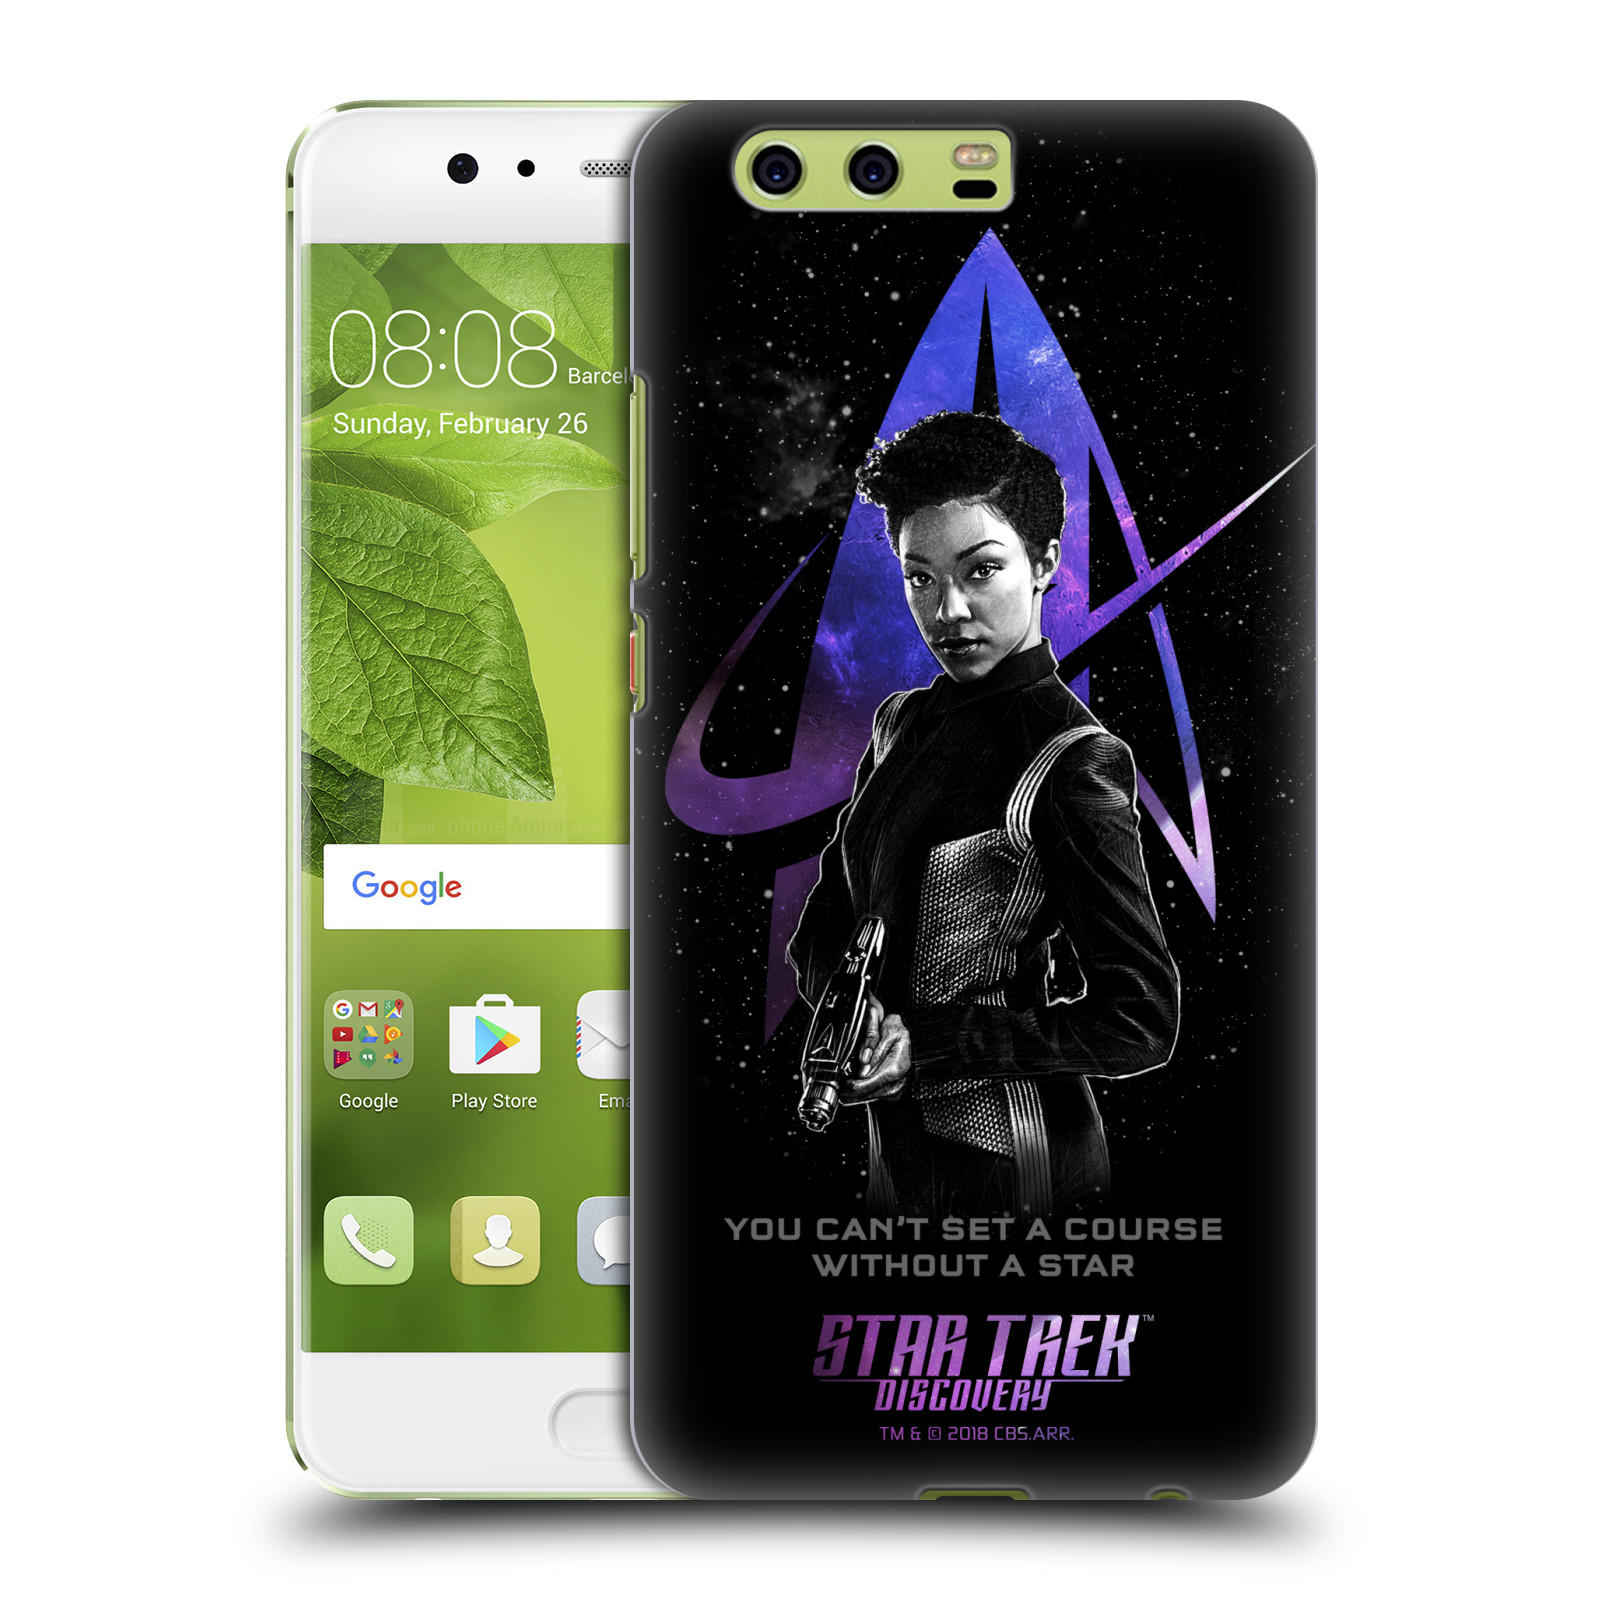 STAR-TREK-DISCOVERY-DISCOVERY-NEBULA-CHARACTERS-BACK-CASE-FOR-HUAWEI-PHONES-1